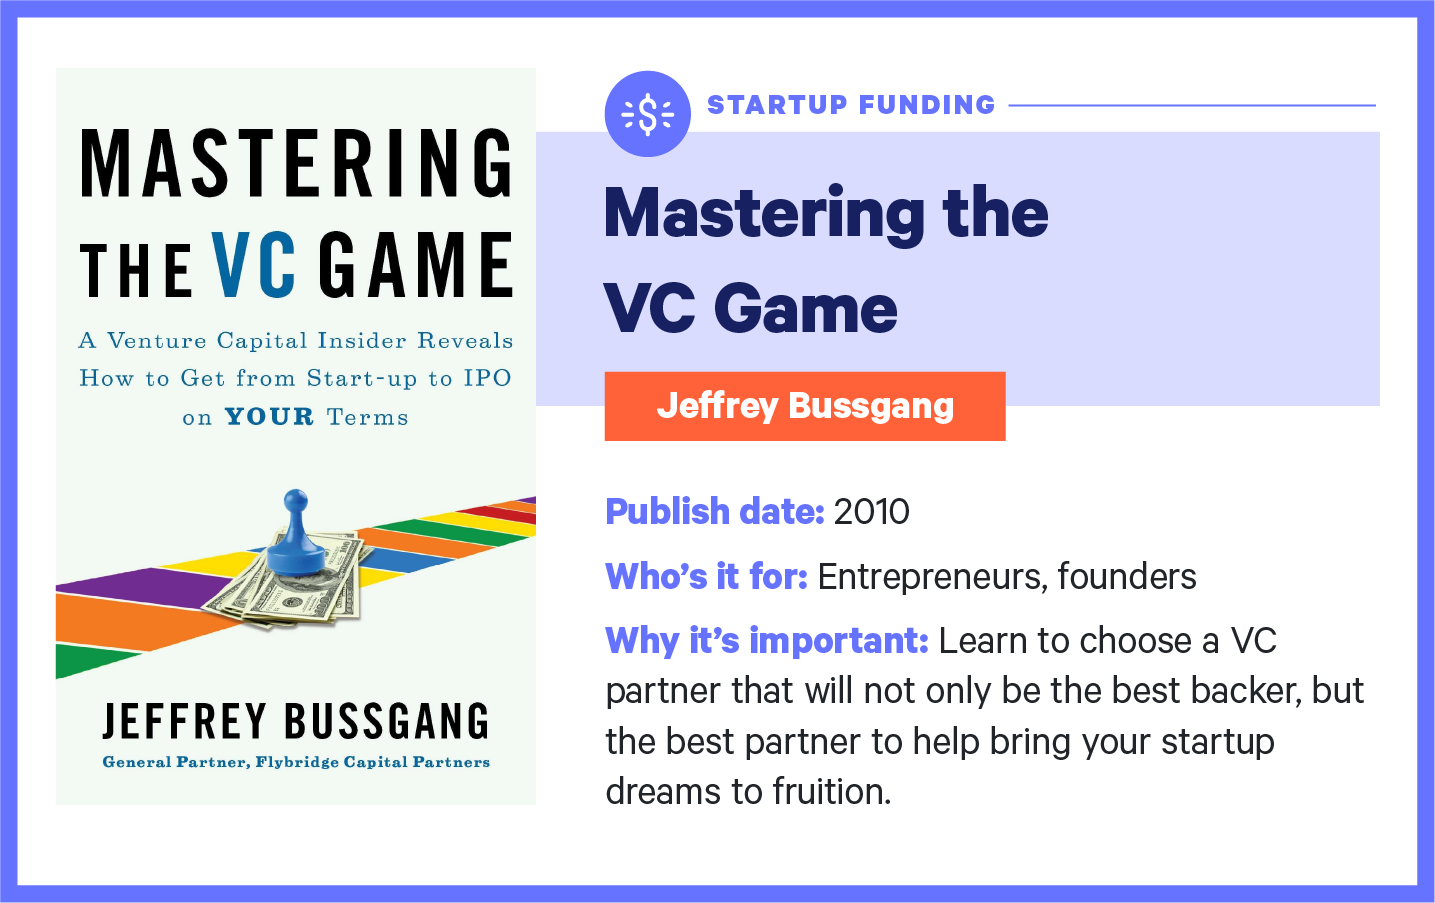 mastering the VC game book